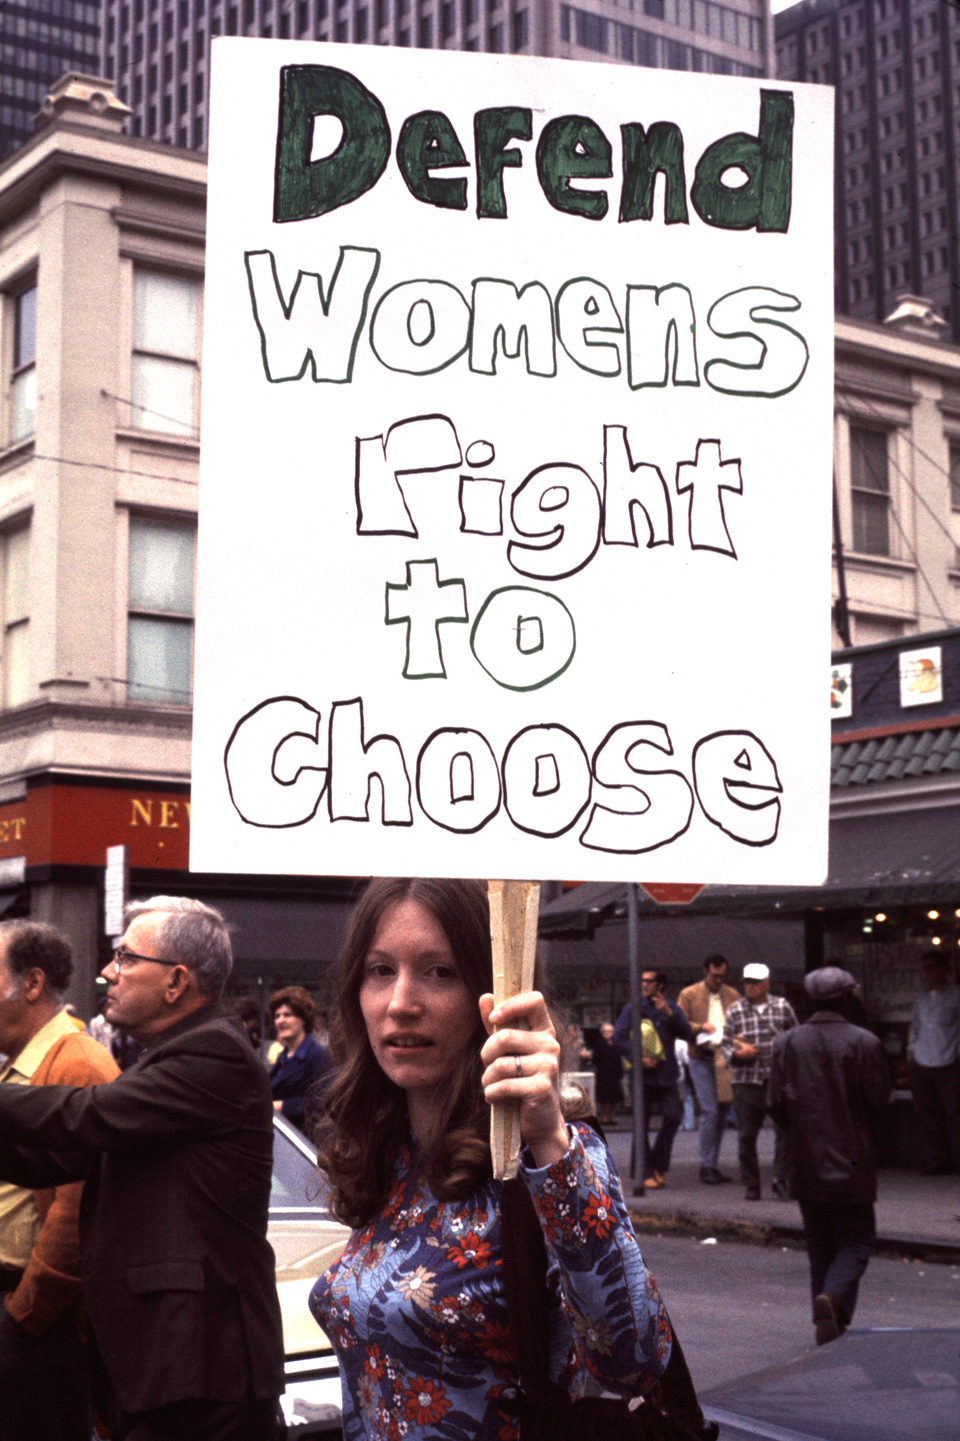 Women's right to choose